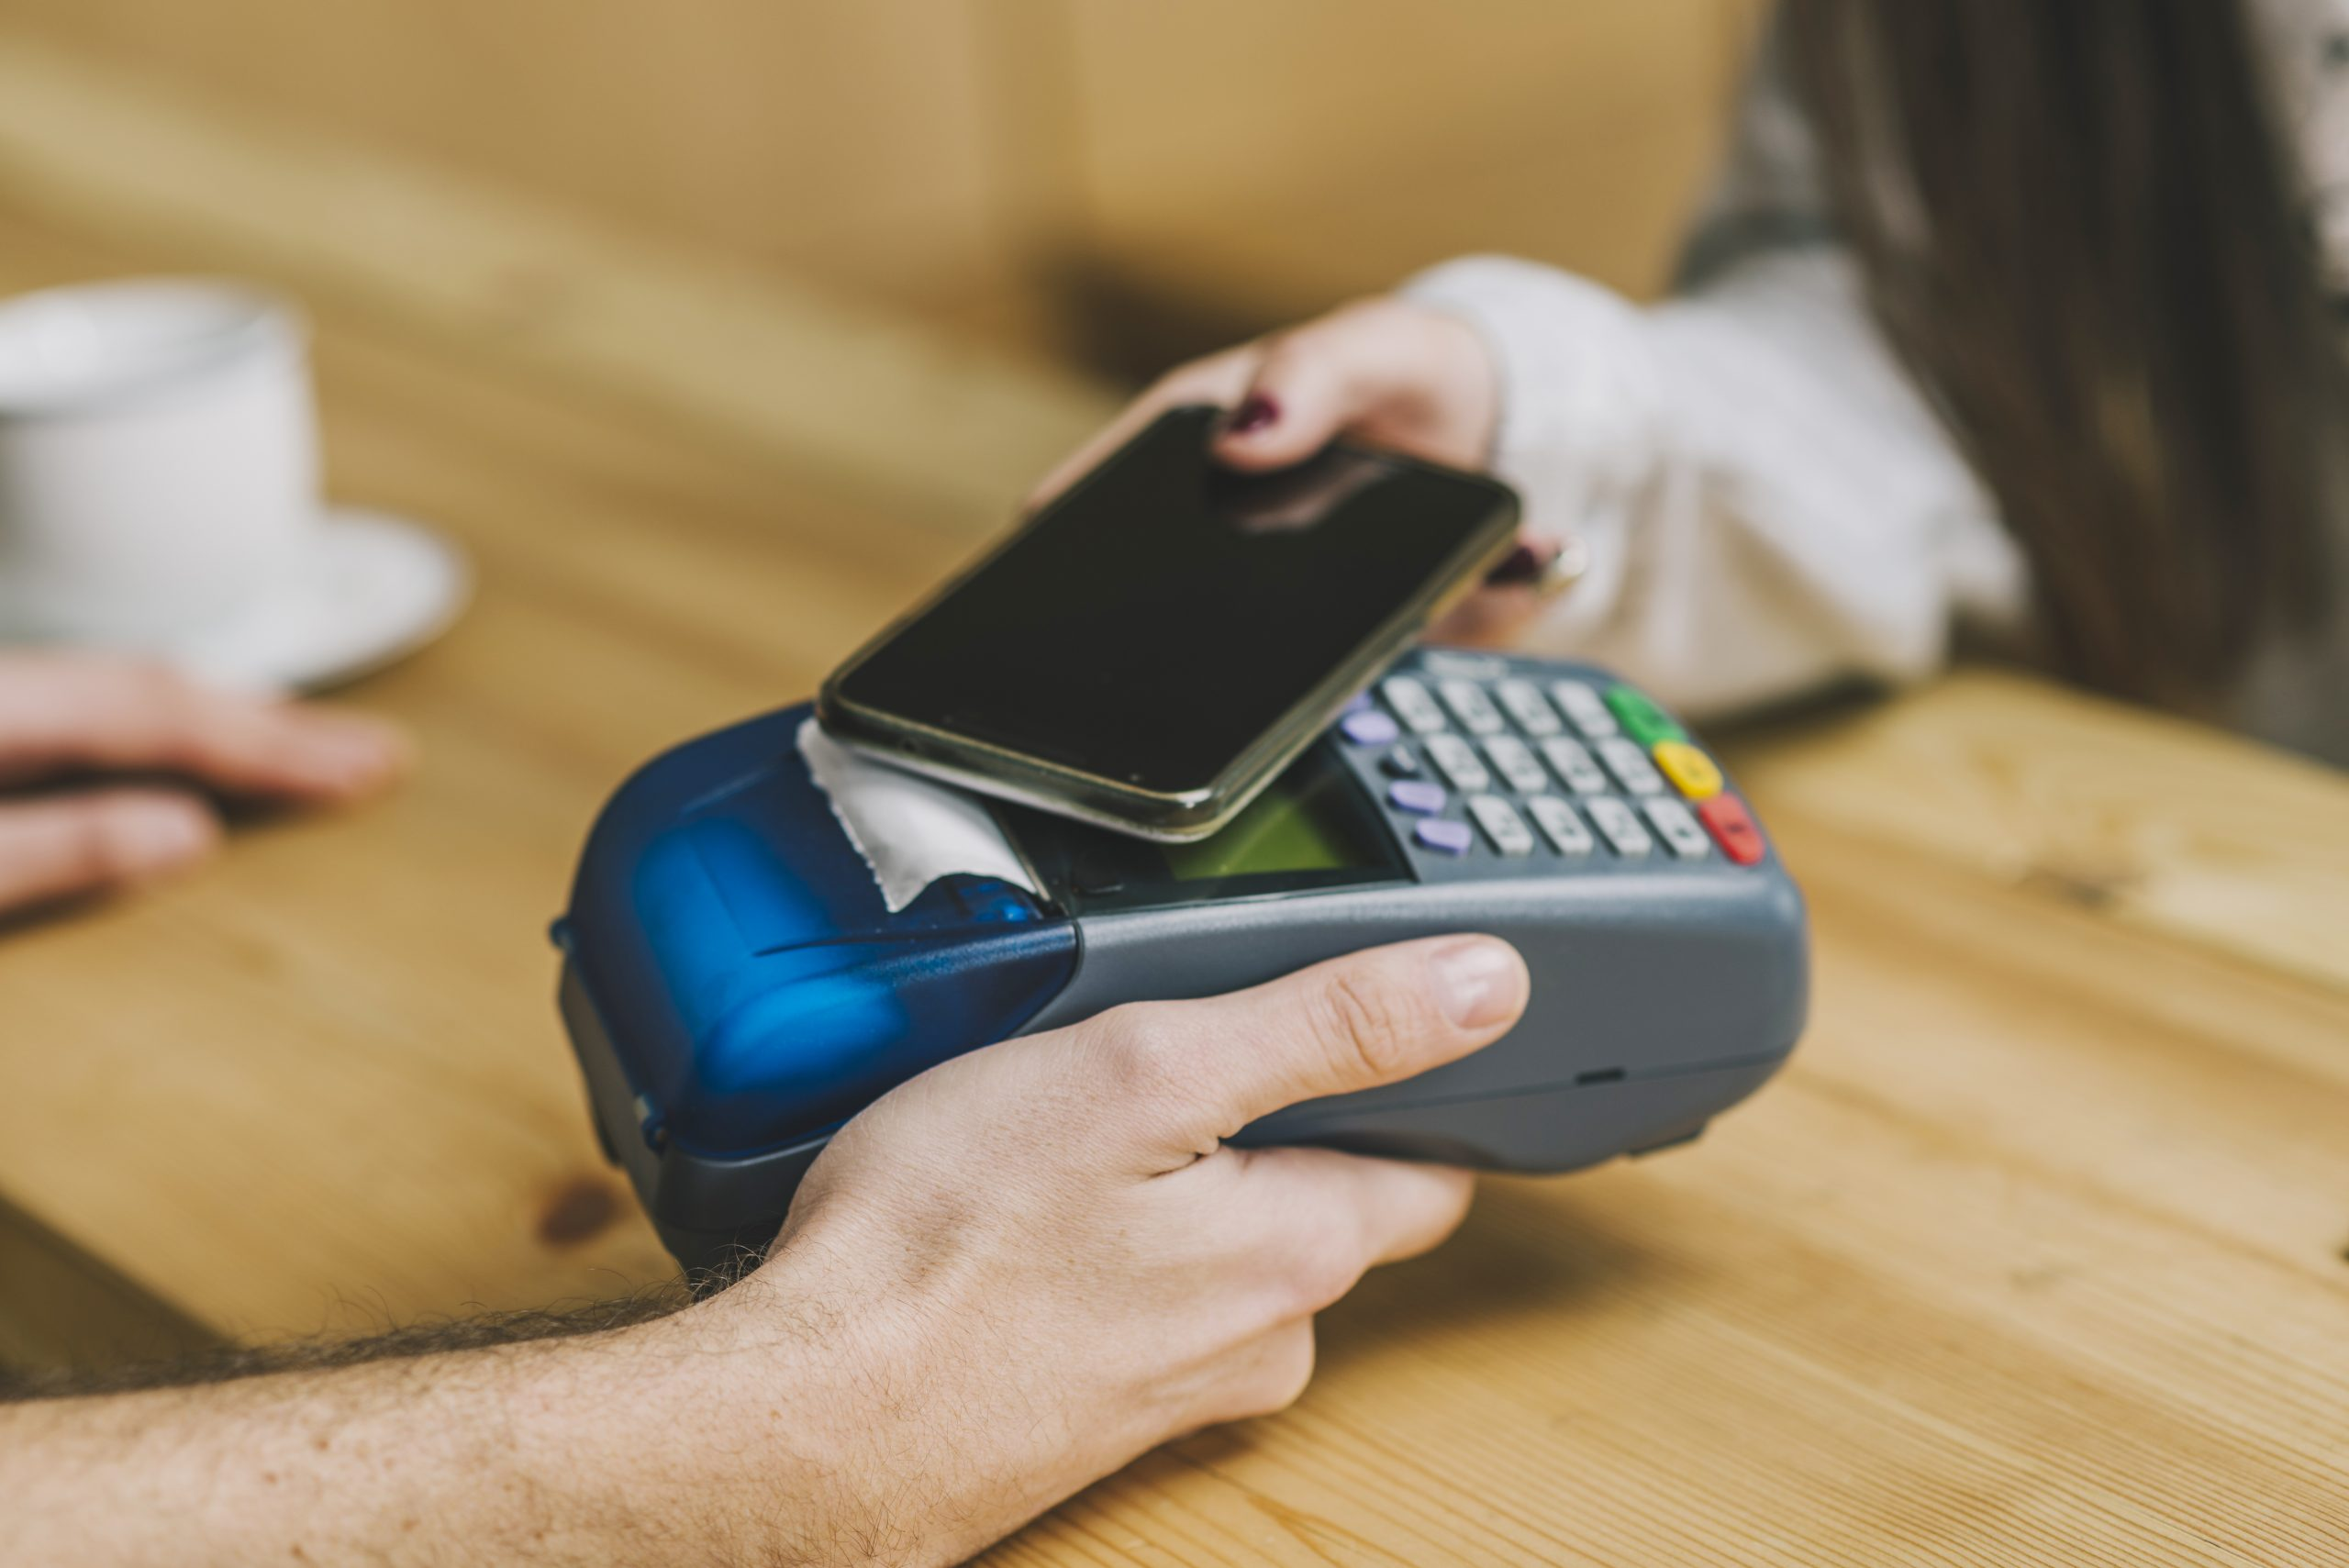 Worldpay from FIS Enables One-Click Google Pay Integration for Merchants